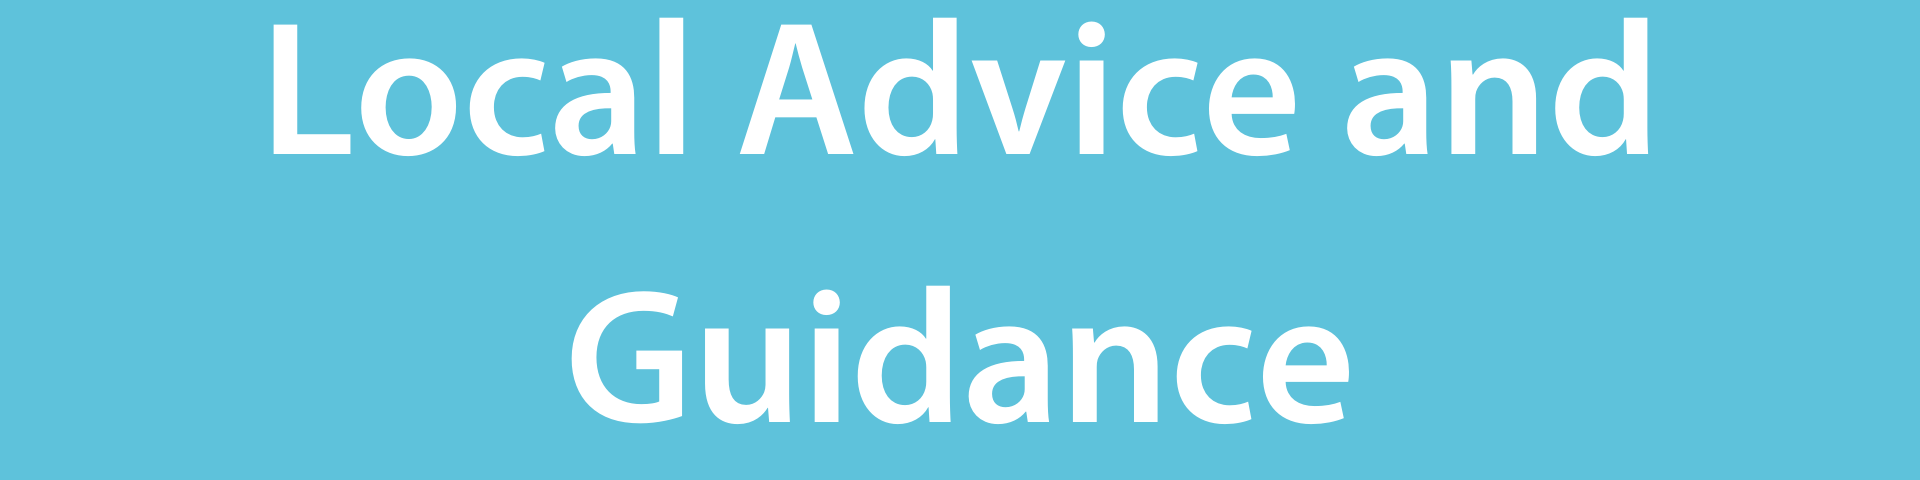 Local advice and guidance